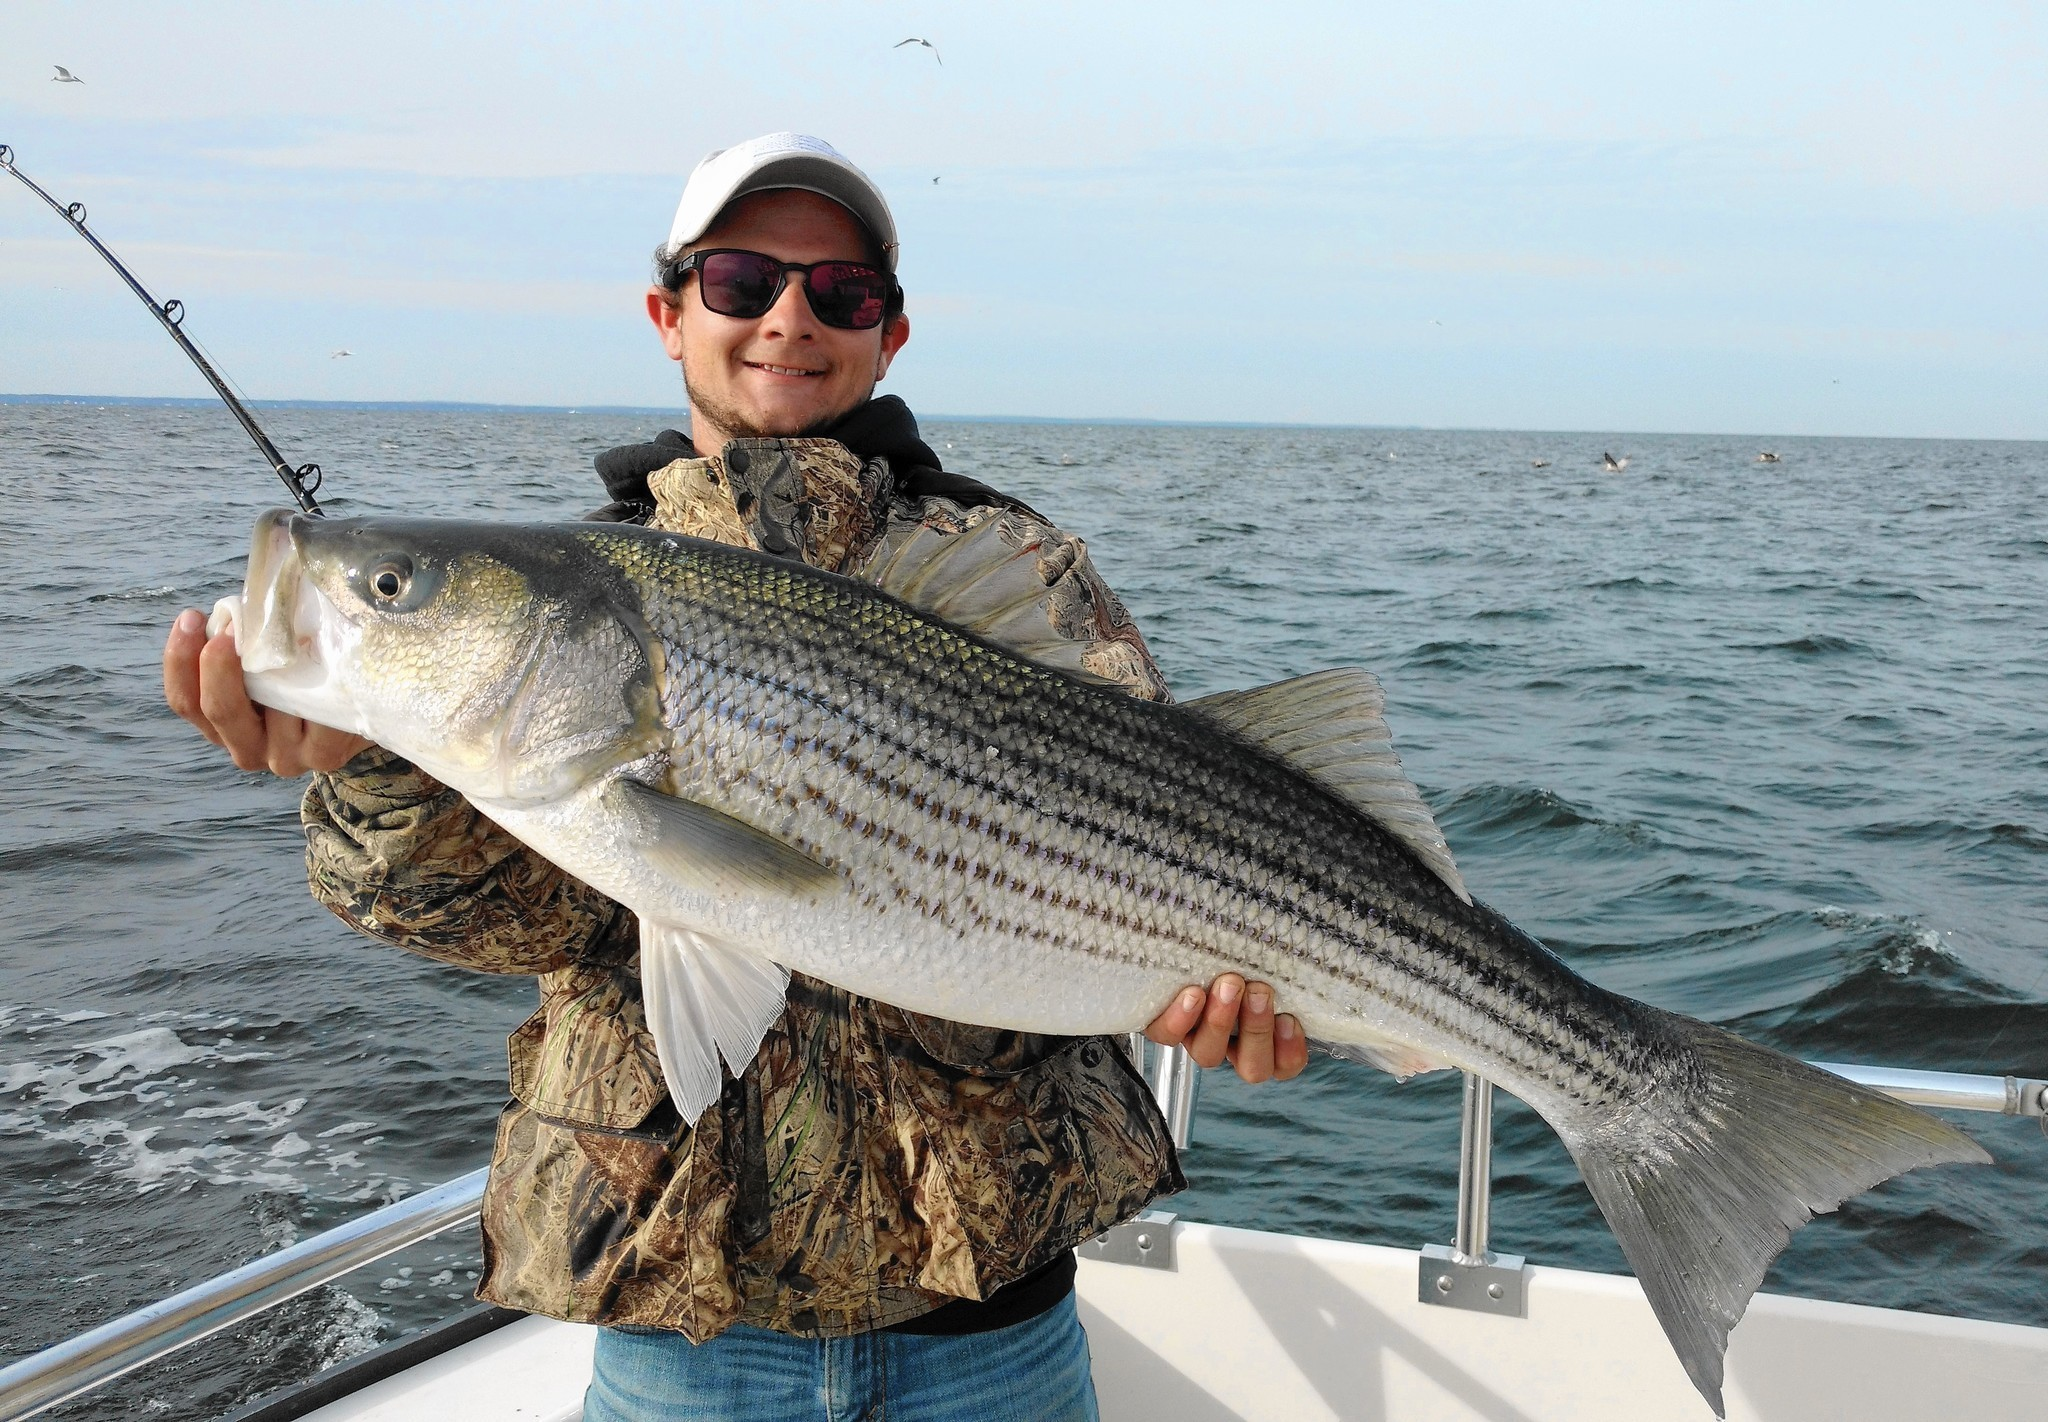 Mouth of potomac hot spot for rockfish baltimore sun for Potomac river fishing spots